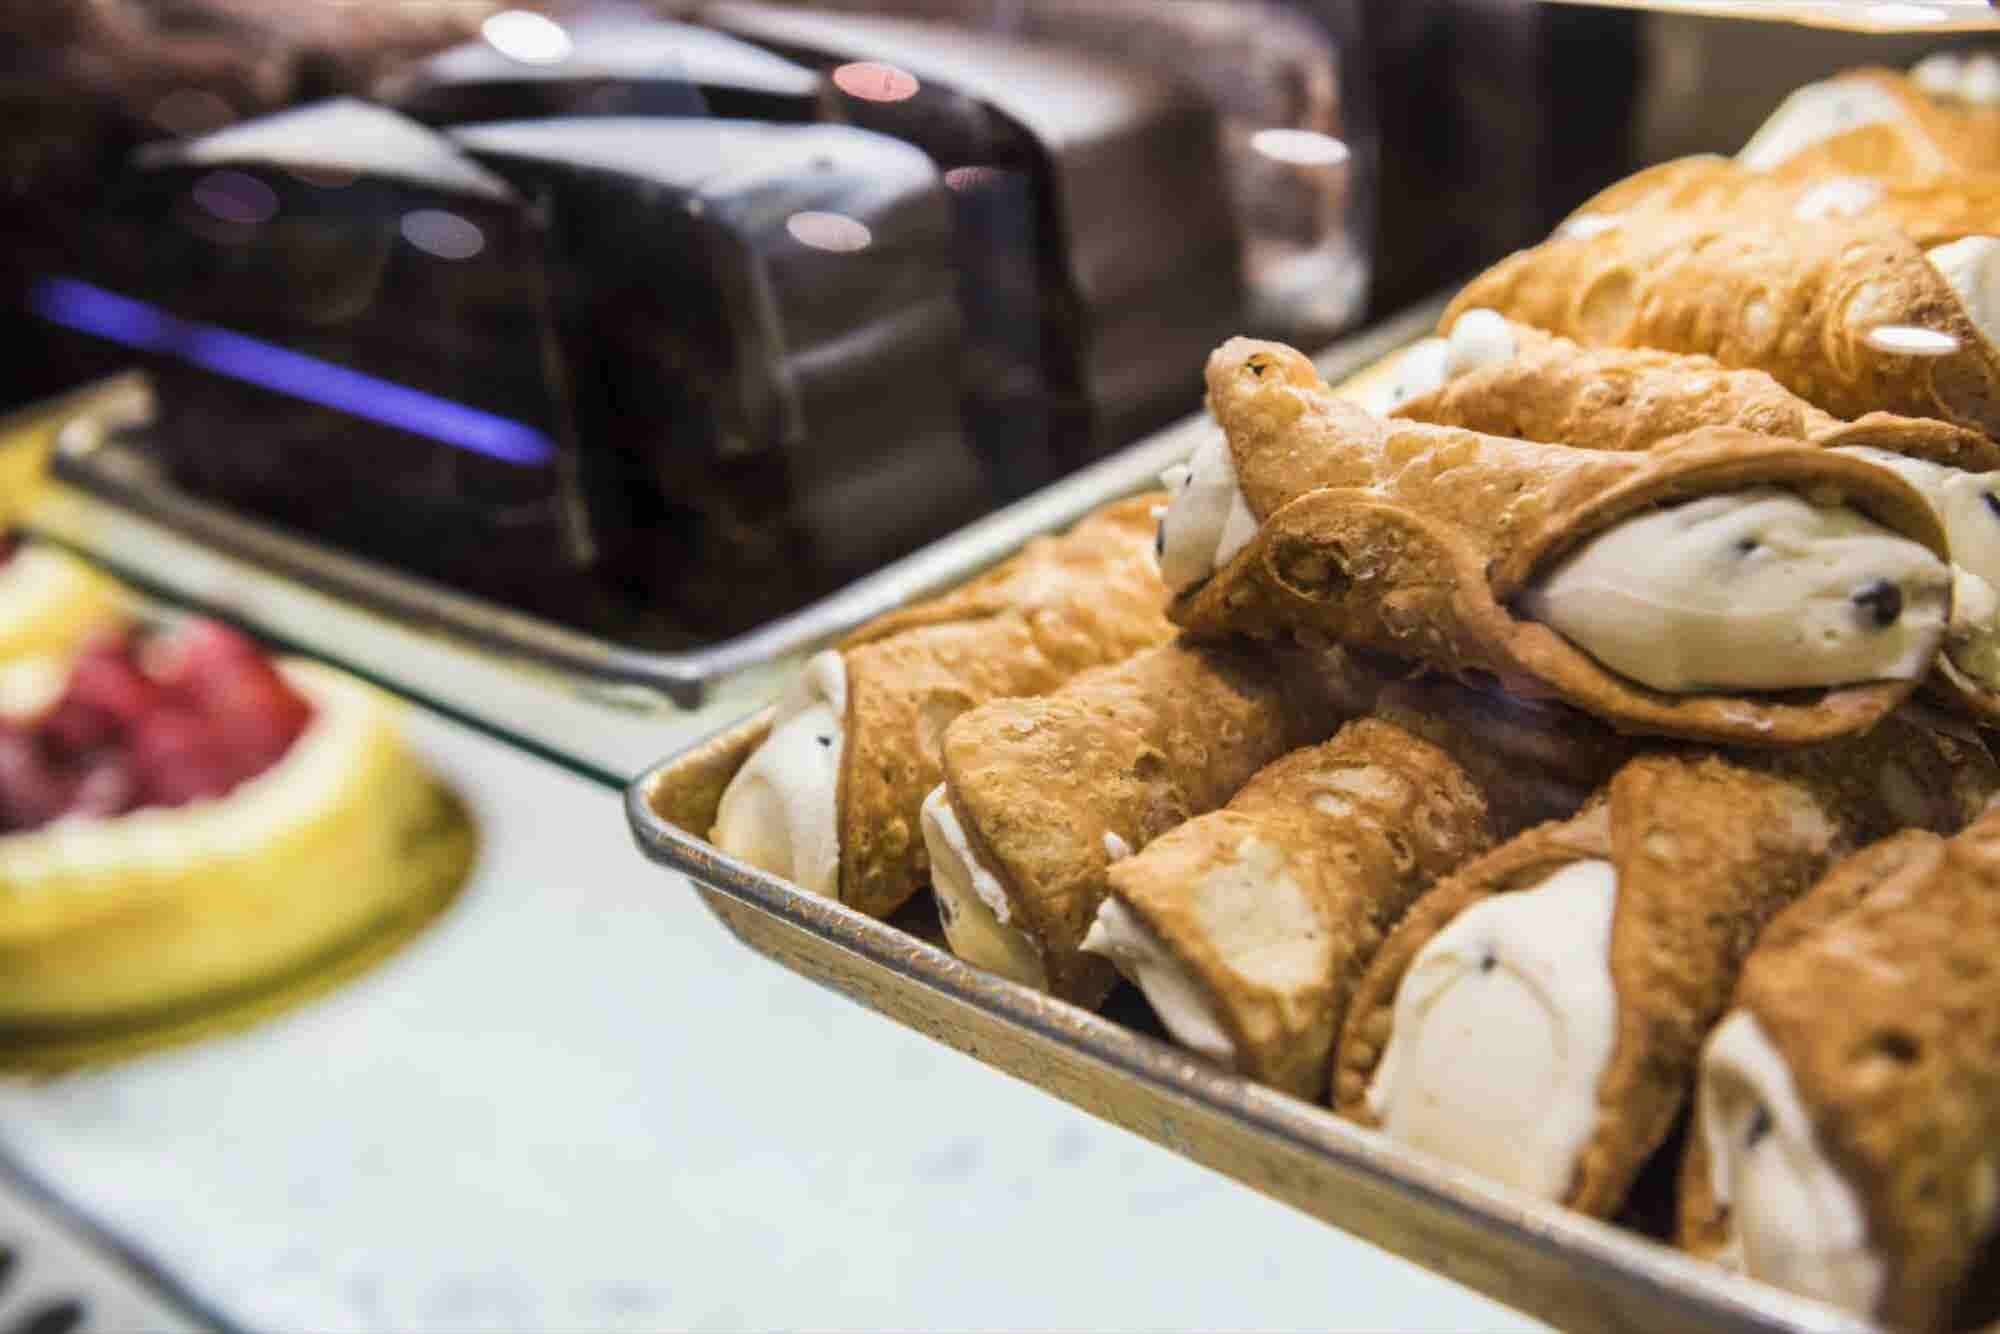 This Pro Wrestler Turned Cannoli Baker Shows How Small Businesses Can Leverage Themselves Against the Competition